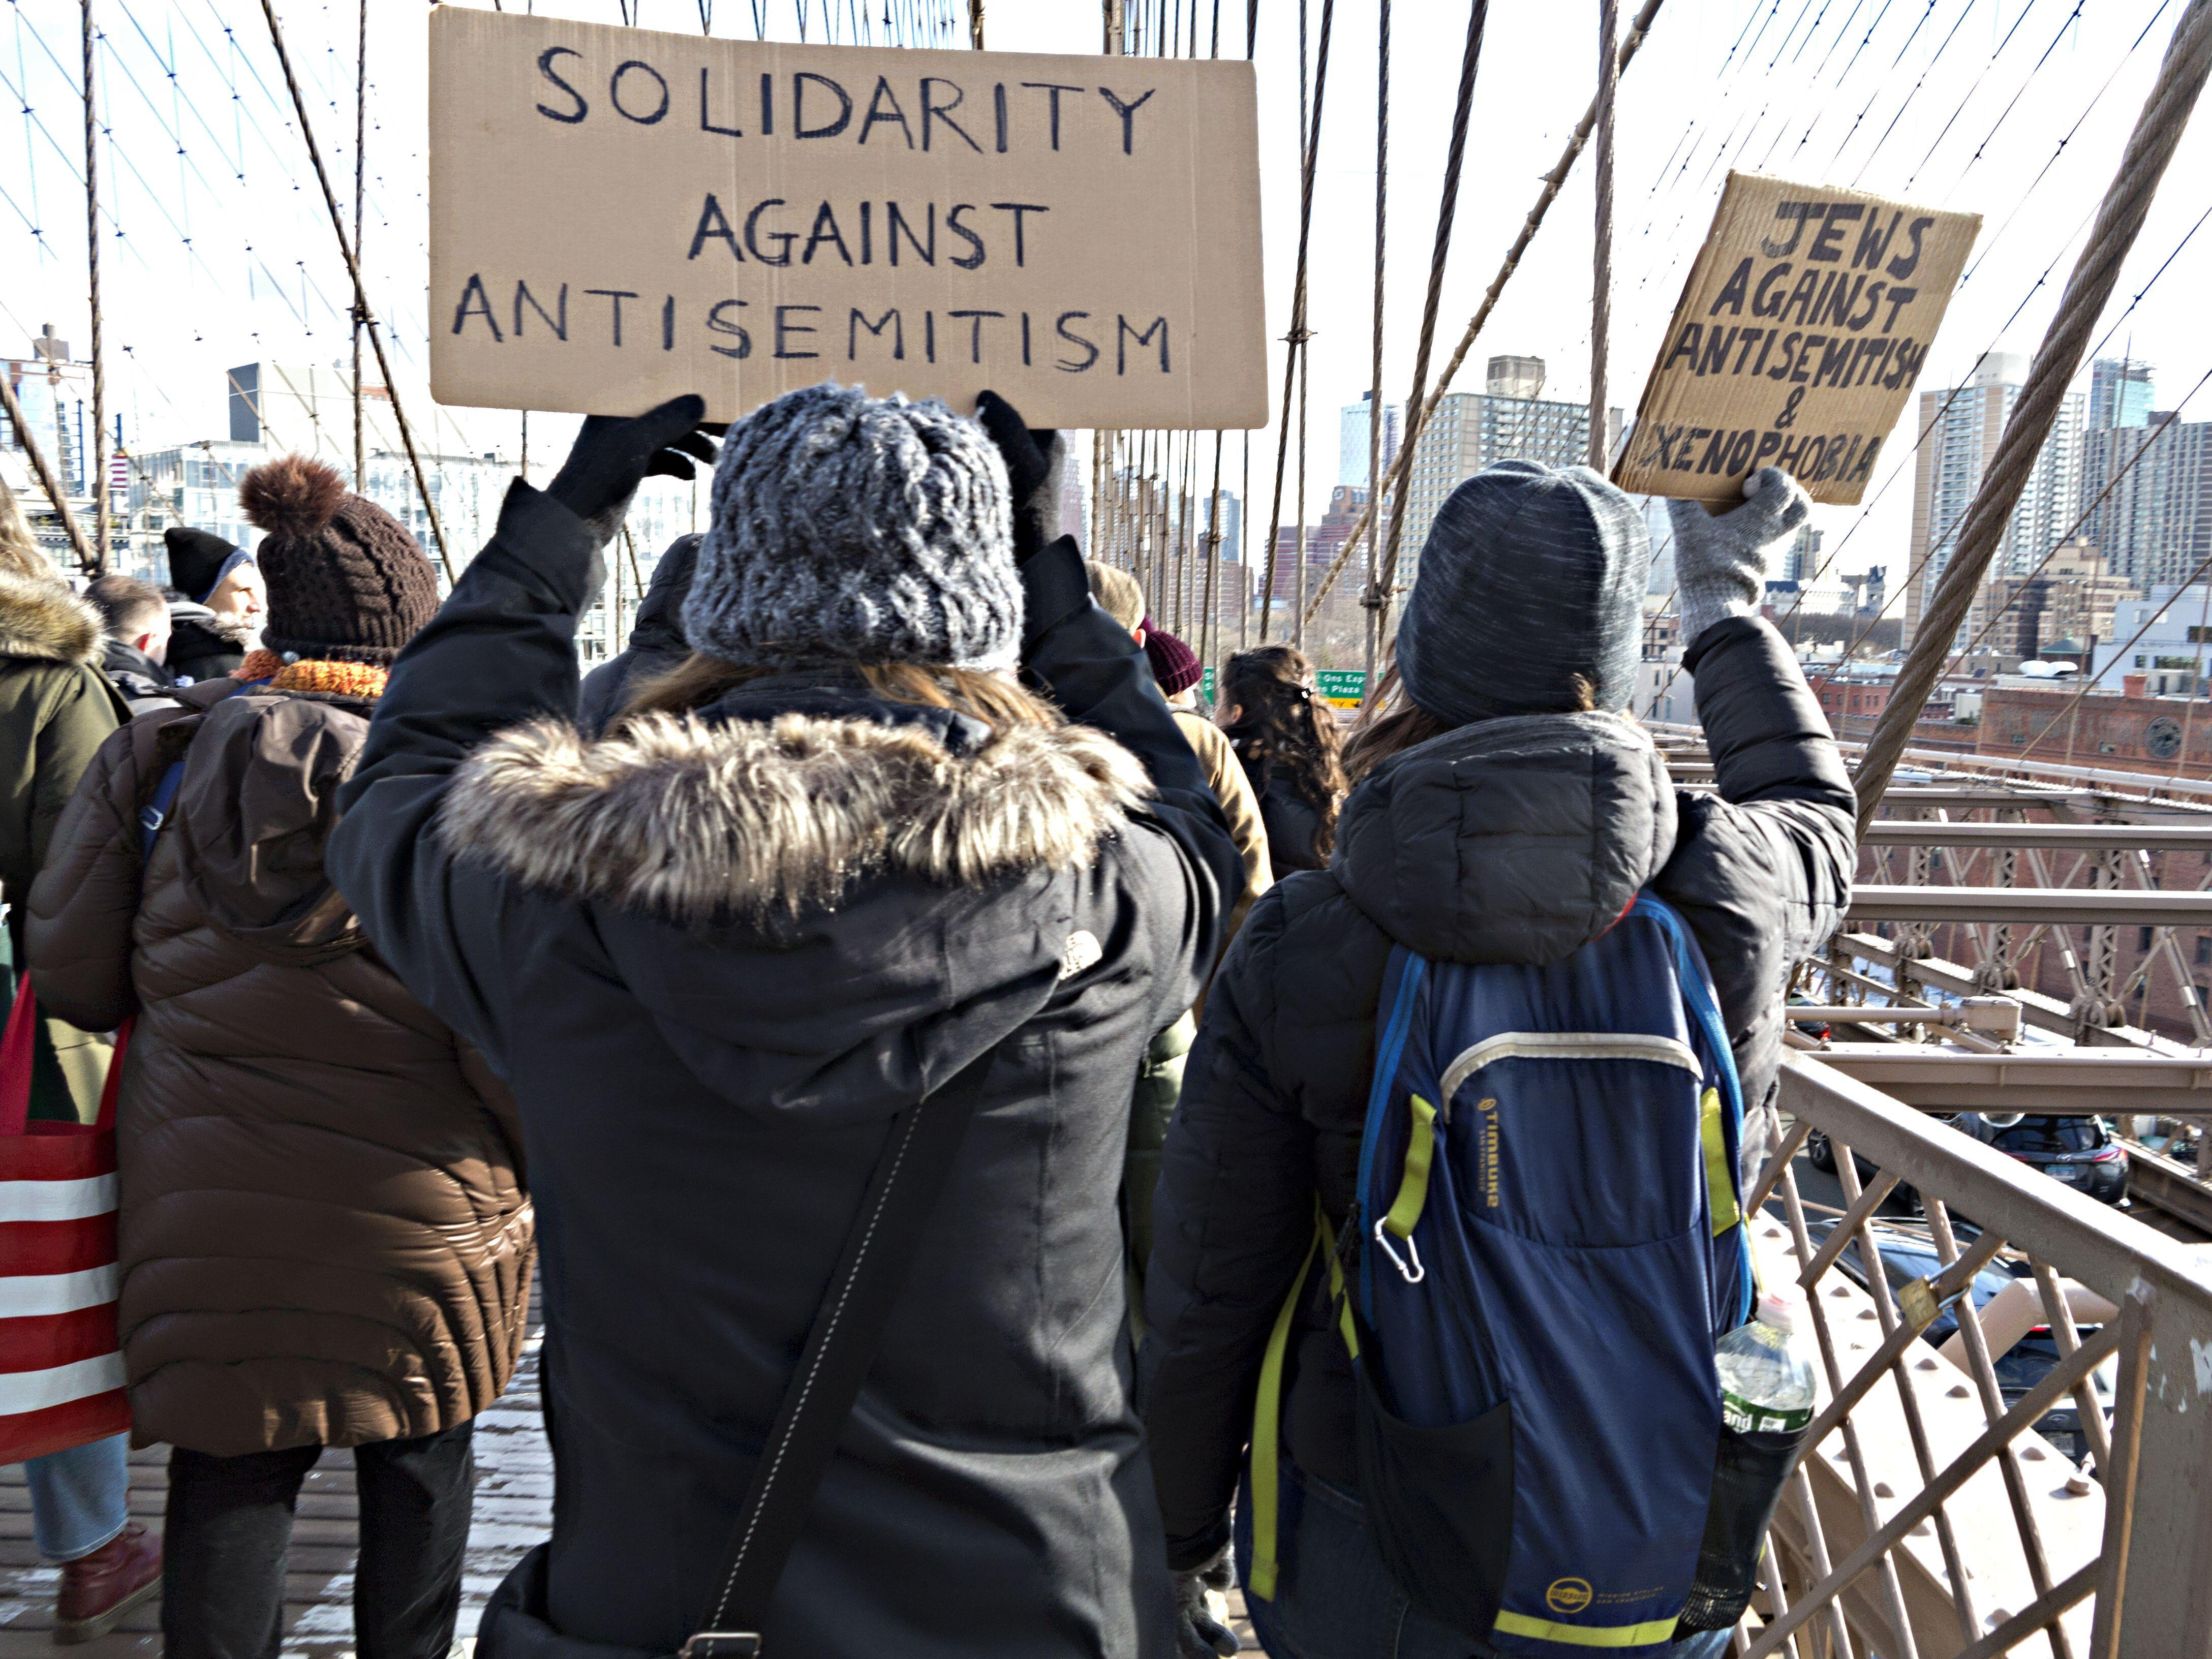 New York, USA. 5th January, 2020. About 15,000 protesters took to the streets in the No Hate No Fear March in response to increased antisemitic attacks